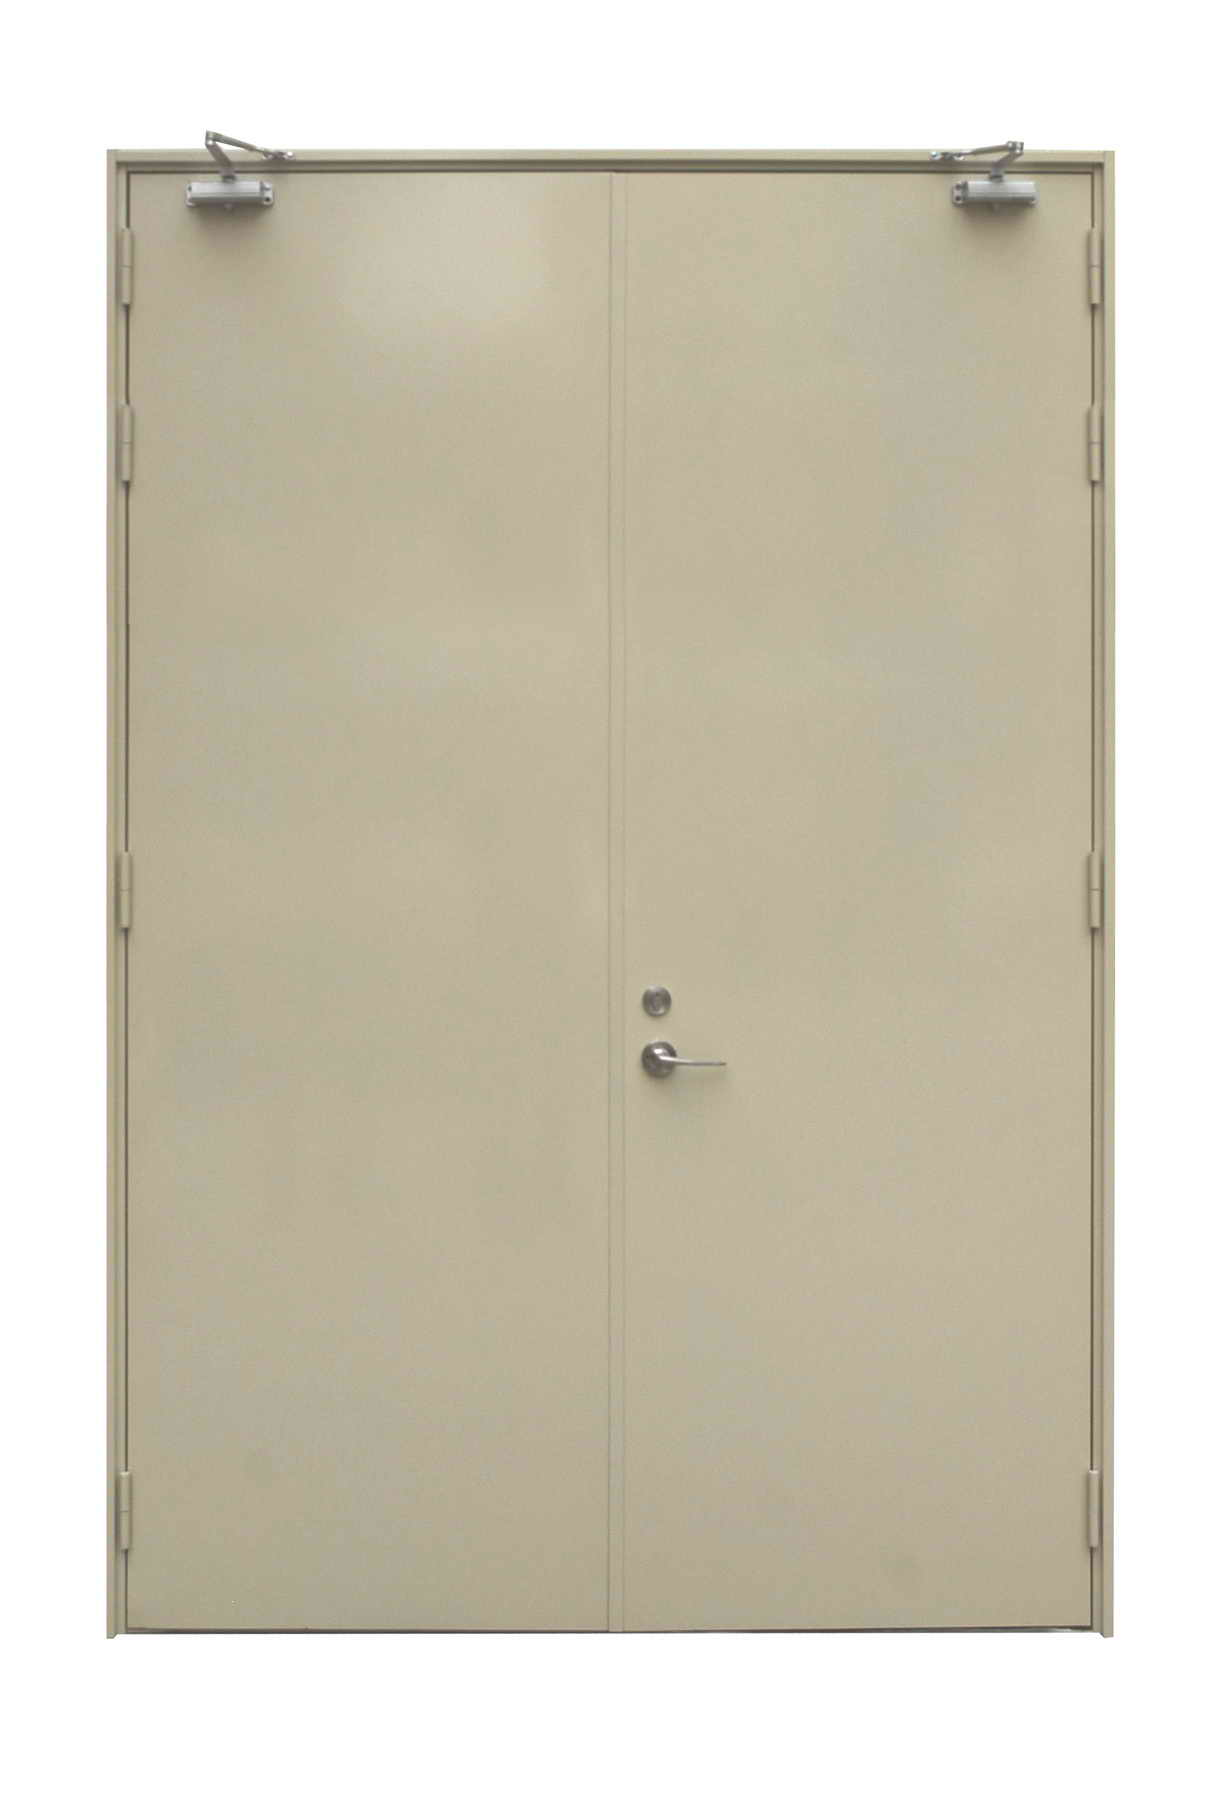 Double Steel Doors : Double steel door for industrial buildings